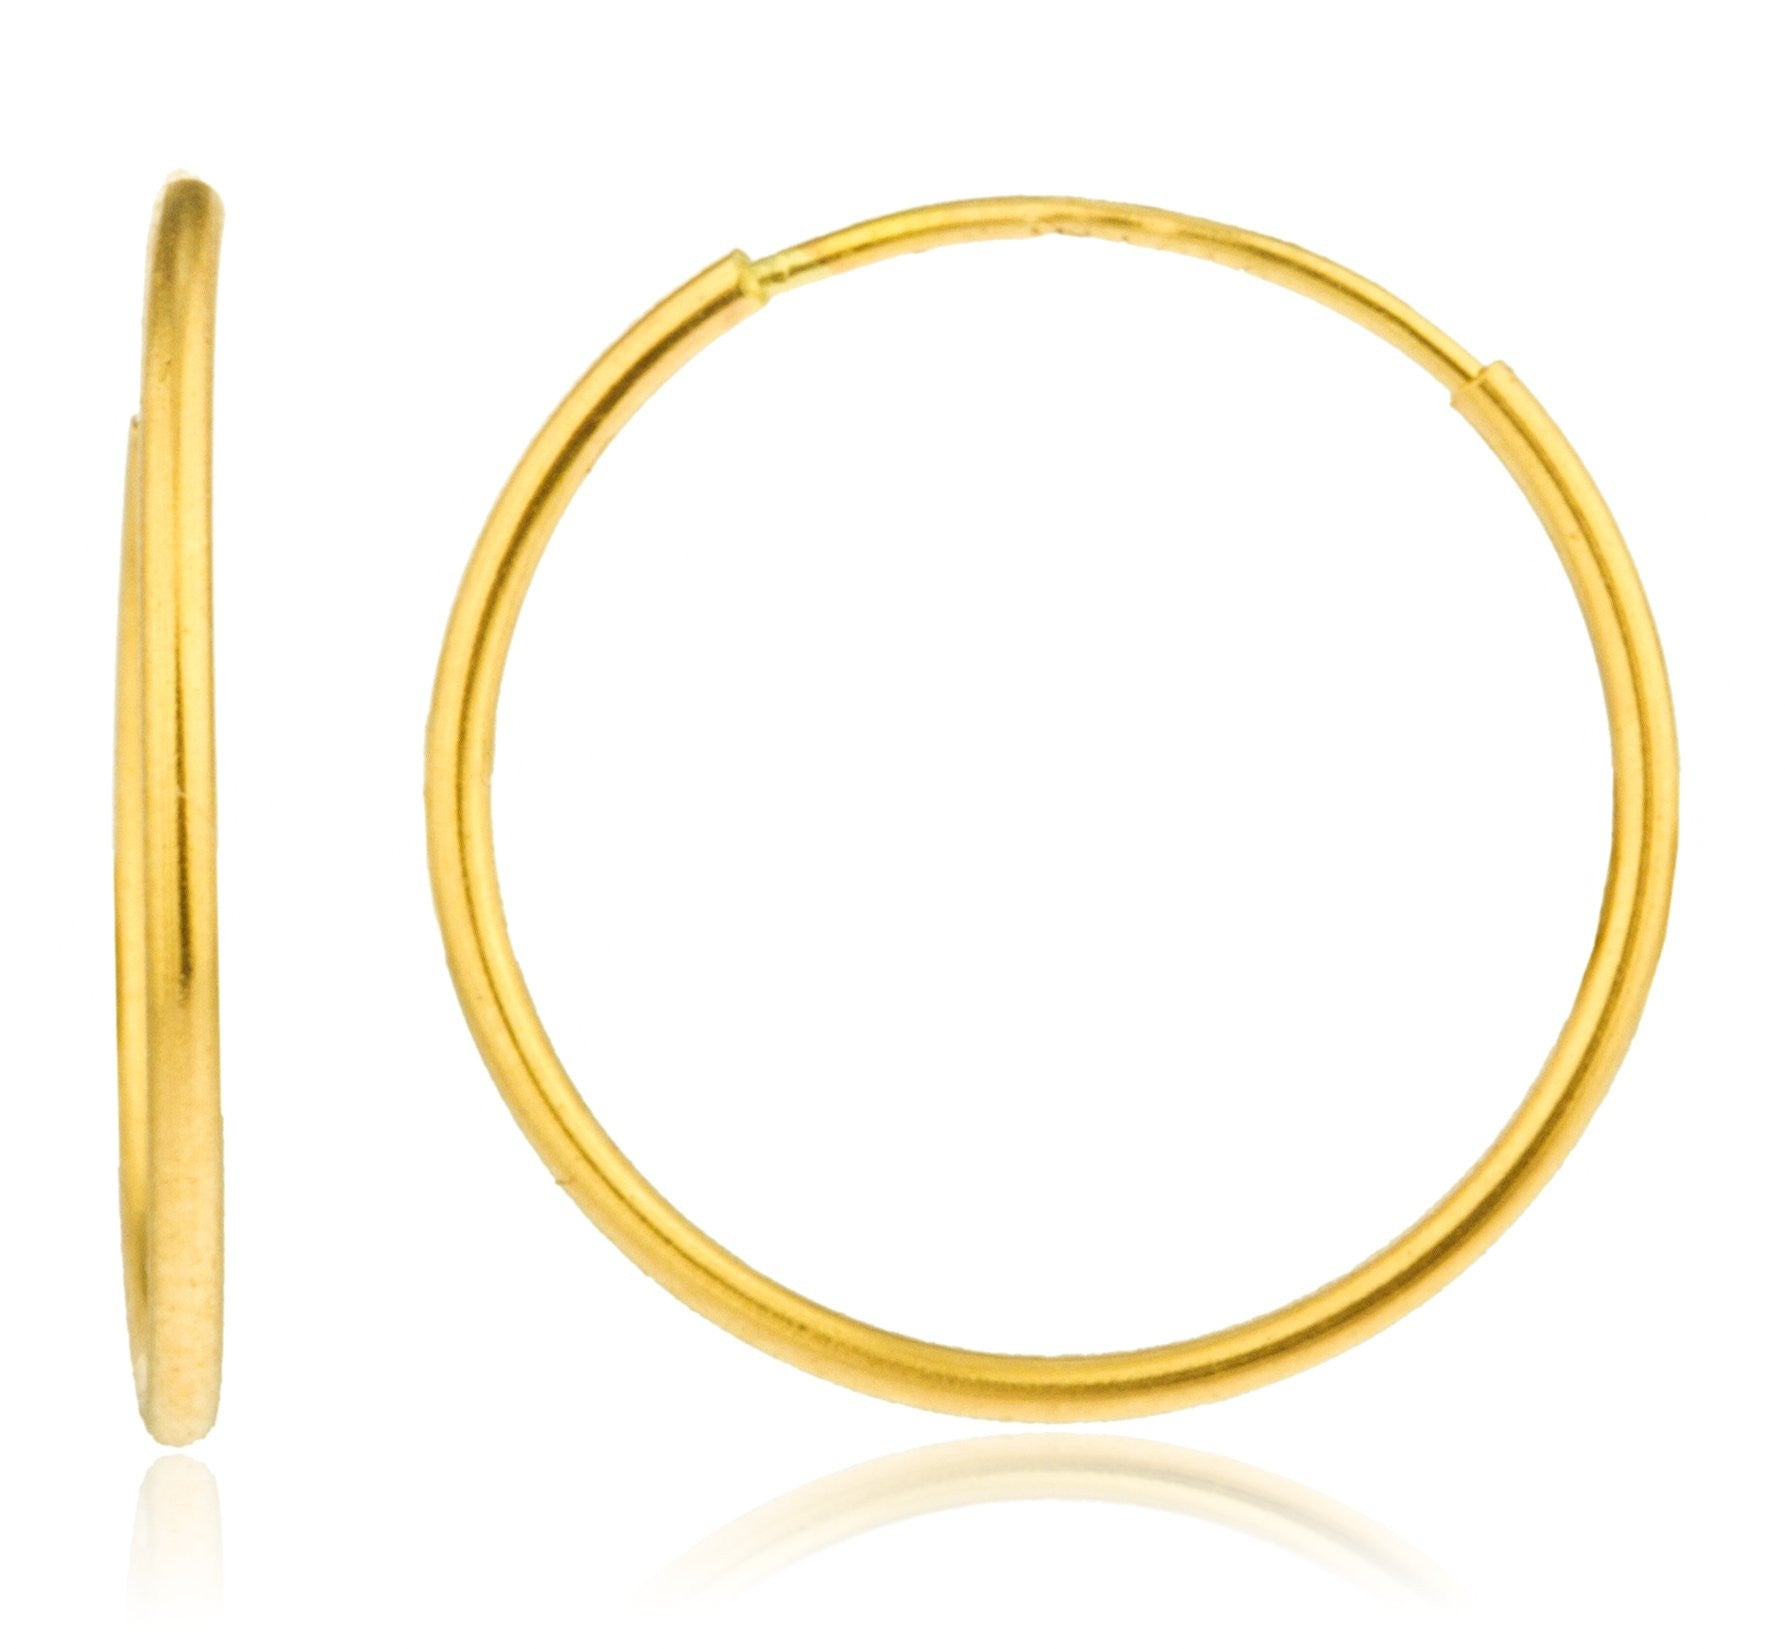 c59c4df9c 14k Yellow Gold 1mm Endless Hoop Earrings 10mm - 18mm